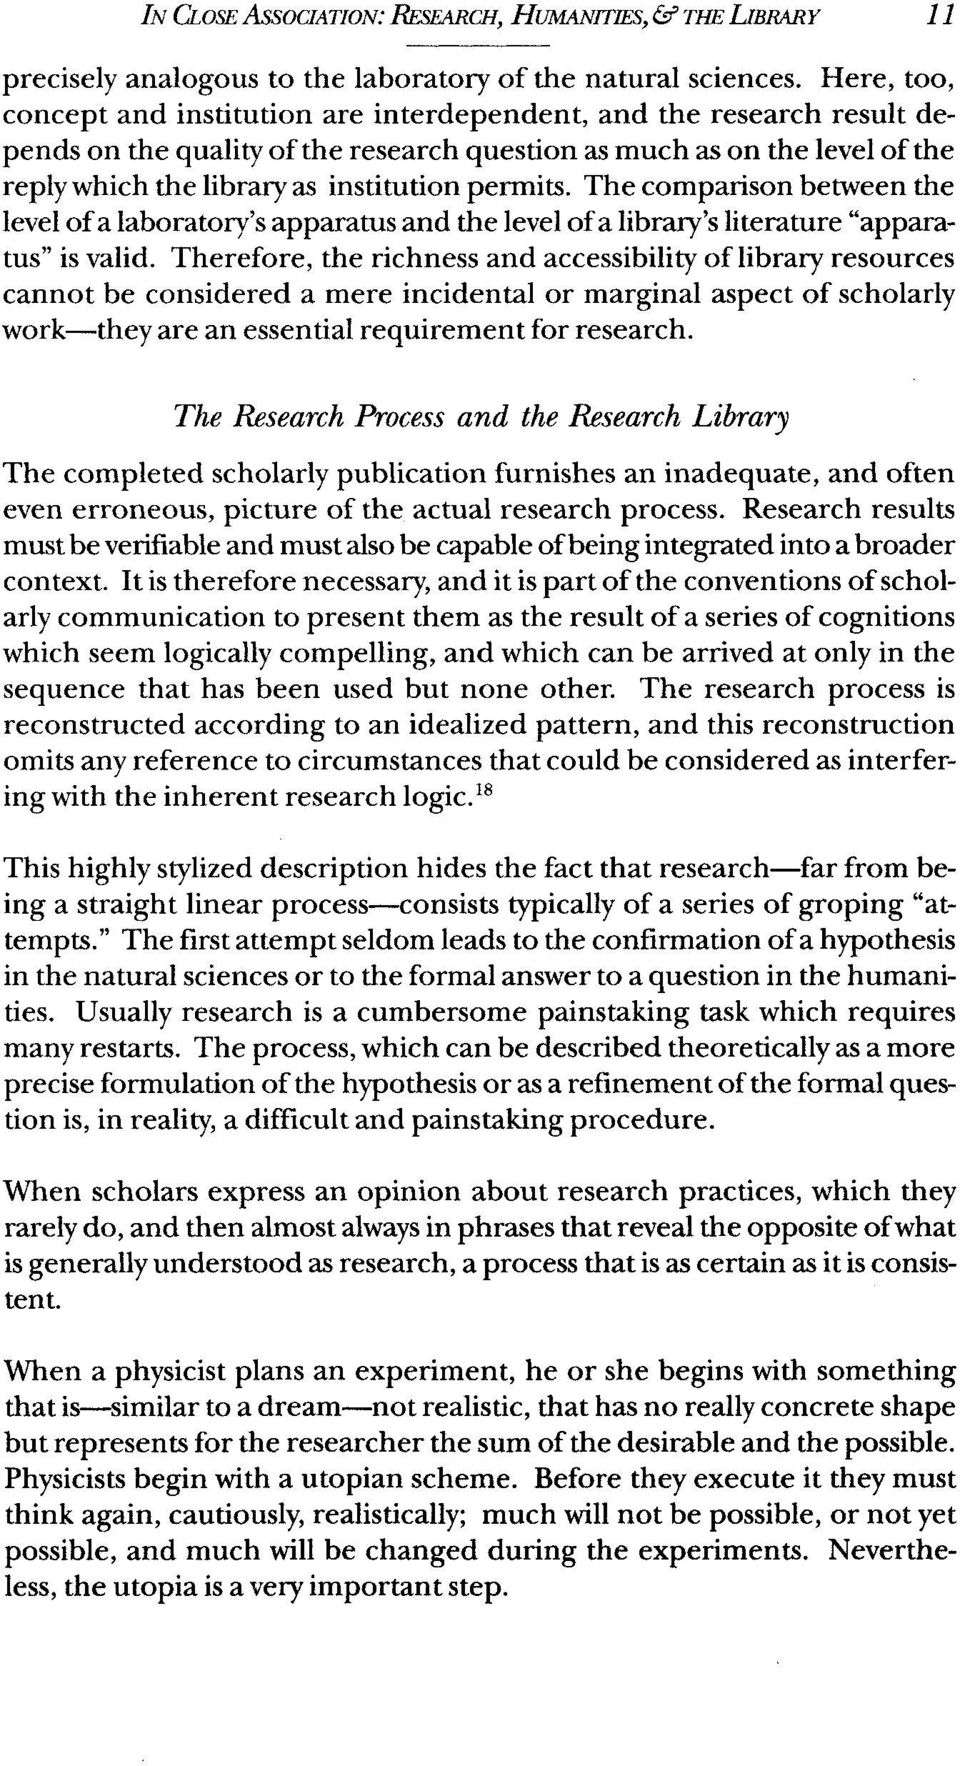 "permits. The comparison between the level of a laboratory's apparatus and the level of a library's literature ""apparatus"" is valid."